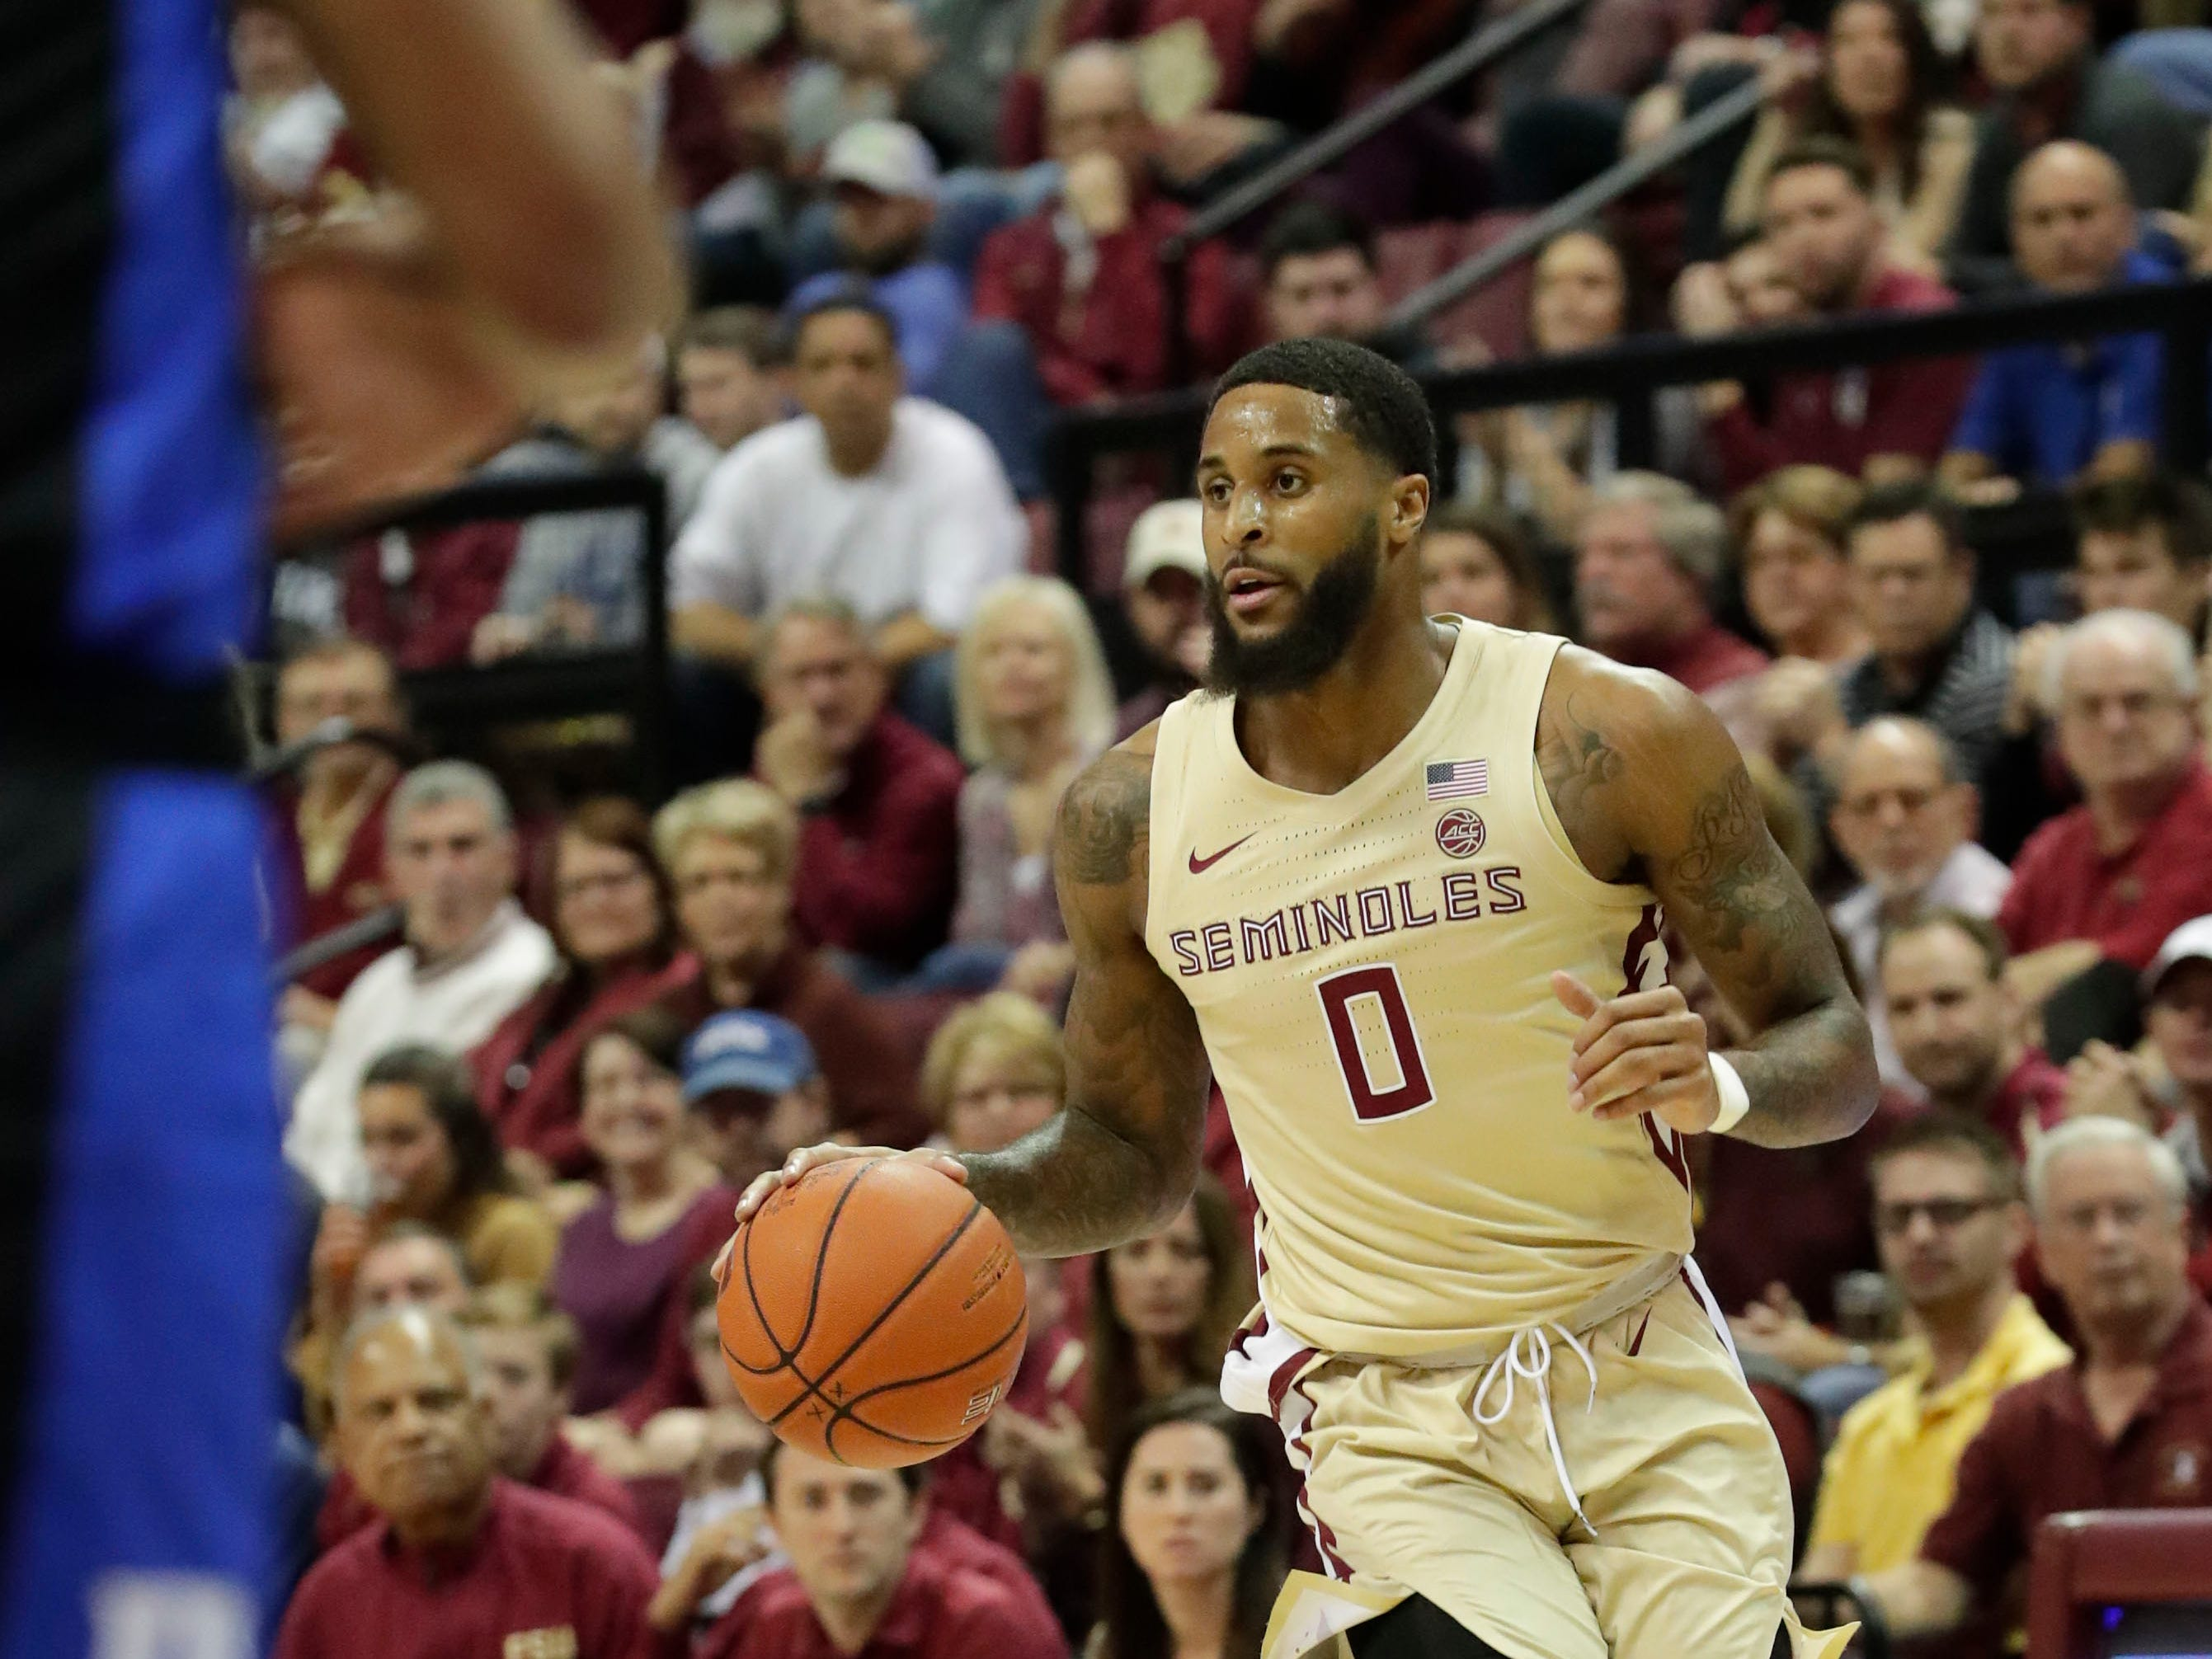 Florida State Seminoles forward Phil Cofer (0) drives the ball to the hoop to shoot for two. Ranked 13 in the ACC, the Florida State Seminoles host the number 1 team, the Duke Blue Devils, at the Tucker Civic Center, Saturday, Jan. 12, 2019.